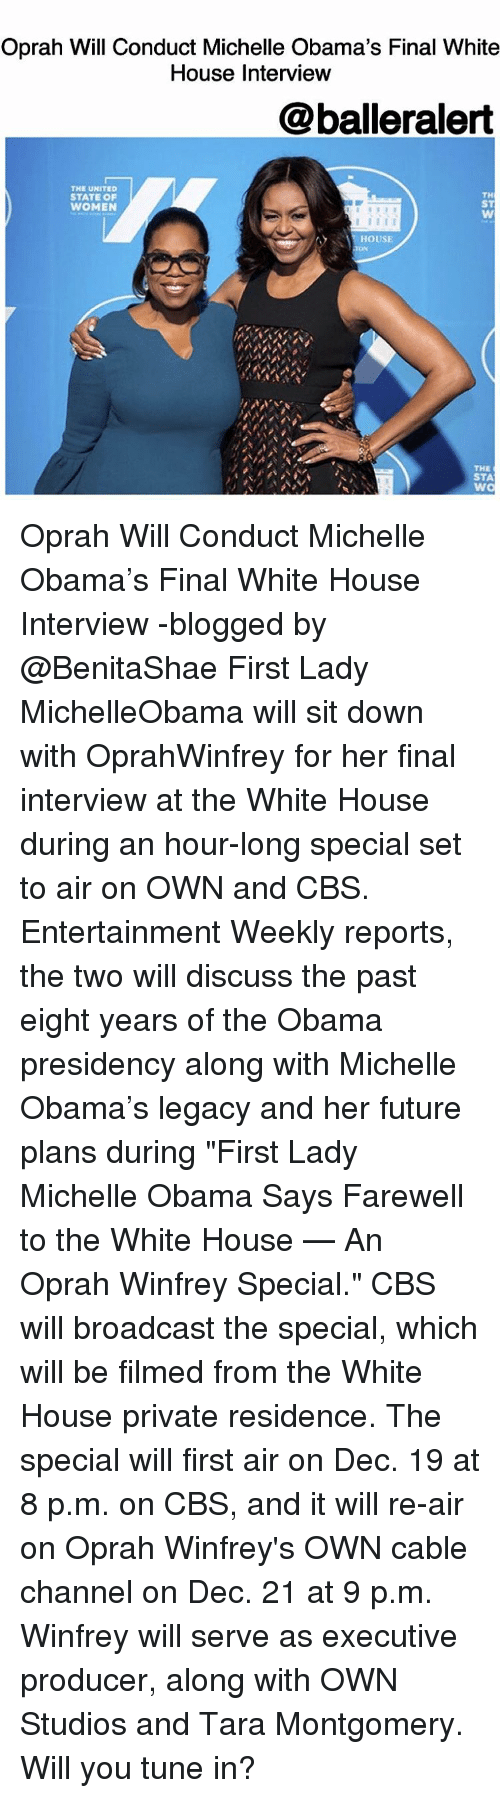 """Obama Legacy: Oprah Will Conduct Michelle Obama's Final White  House Interview  @balleralert  THE UNITED  TH  STATE OF  ST  WOMEN  HOUSE  STA Oprah Will Conduct Michelle Obama's Final White House Interview -blogged by @BenitaShae First Lady MichelleObama will sit down with OprahWinfrey for her final interview at the White House during an hour-long special set to air on OWN and CBS. Entertainment Weekly reports, the two will discuss the past eight years of the Obama presidency along with Michelle Obama's legacy and her future plans during """"First Lady Michelle Obama Says Farewell to the White House — An Oprah Winfrey Special."""" CBS will broadcast the special, which will be filmed from the White House private residence. The special will first air on Dec. 19 at 8 p.m. on CBS, and it will re-air on Oprah Winfrey's OWN cable channel on Dec. 21 at 9 p.m. Winfrey will serve as executive producer, along with OWN Studios and Tara Montgomery. Will you tune in?"""